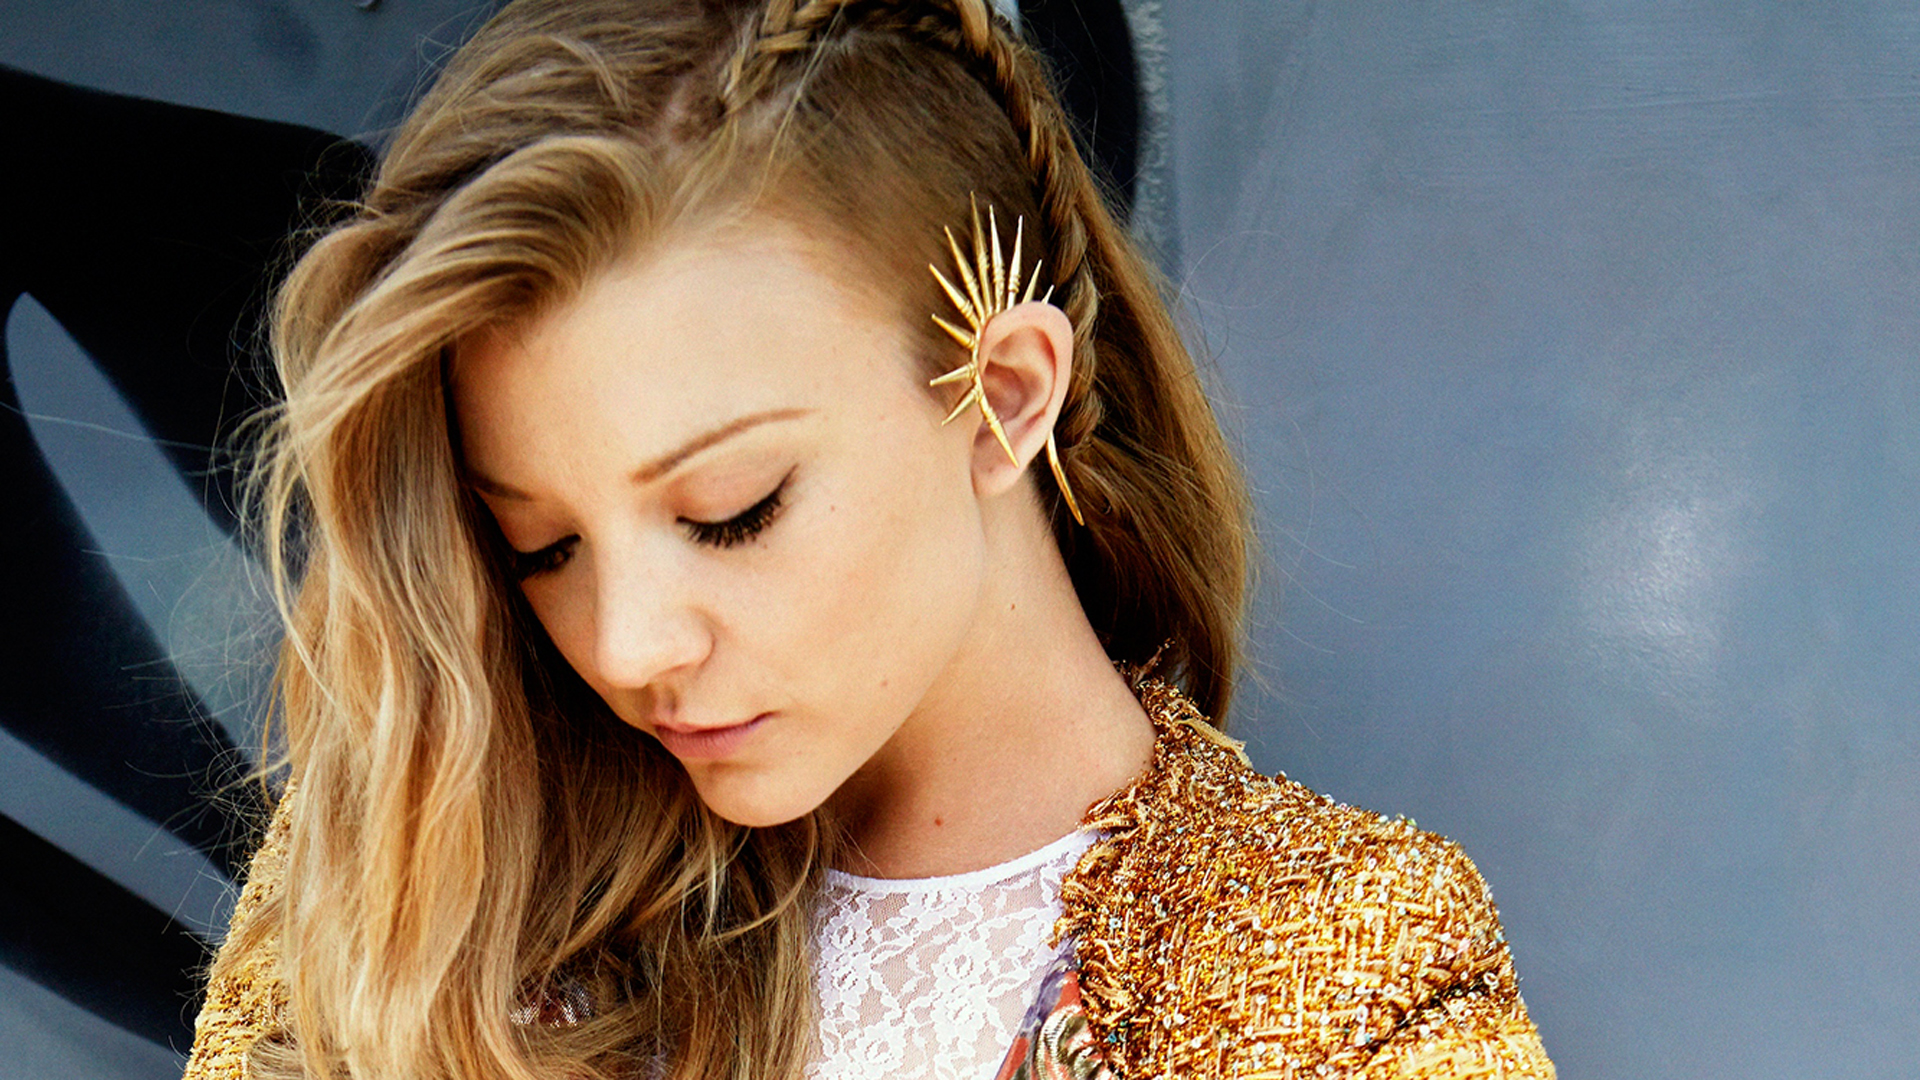 Natalie Dormer HD Wallpaper | Background Image | 1920x1080 ...